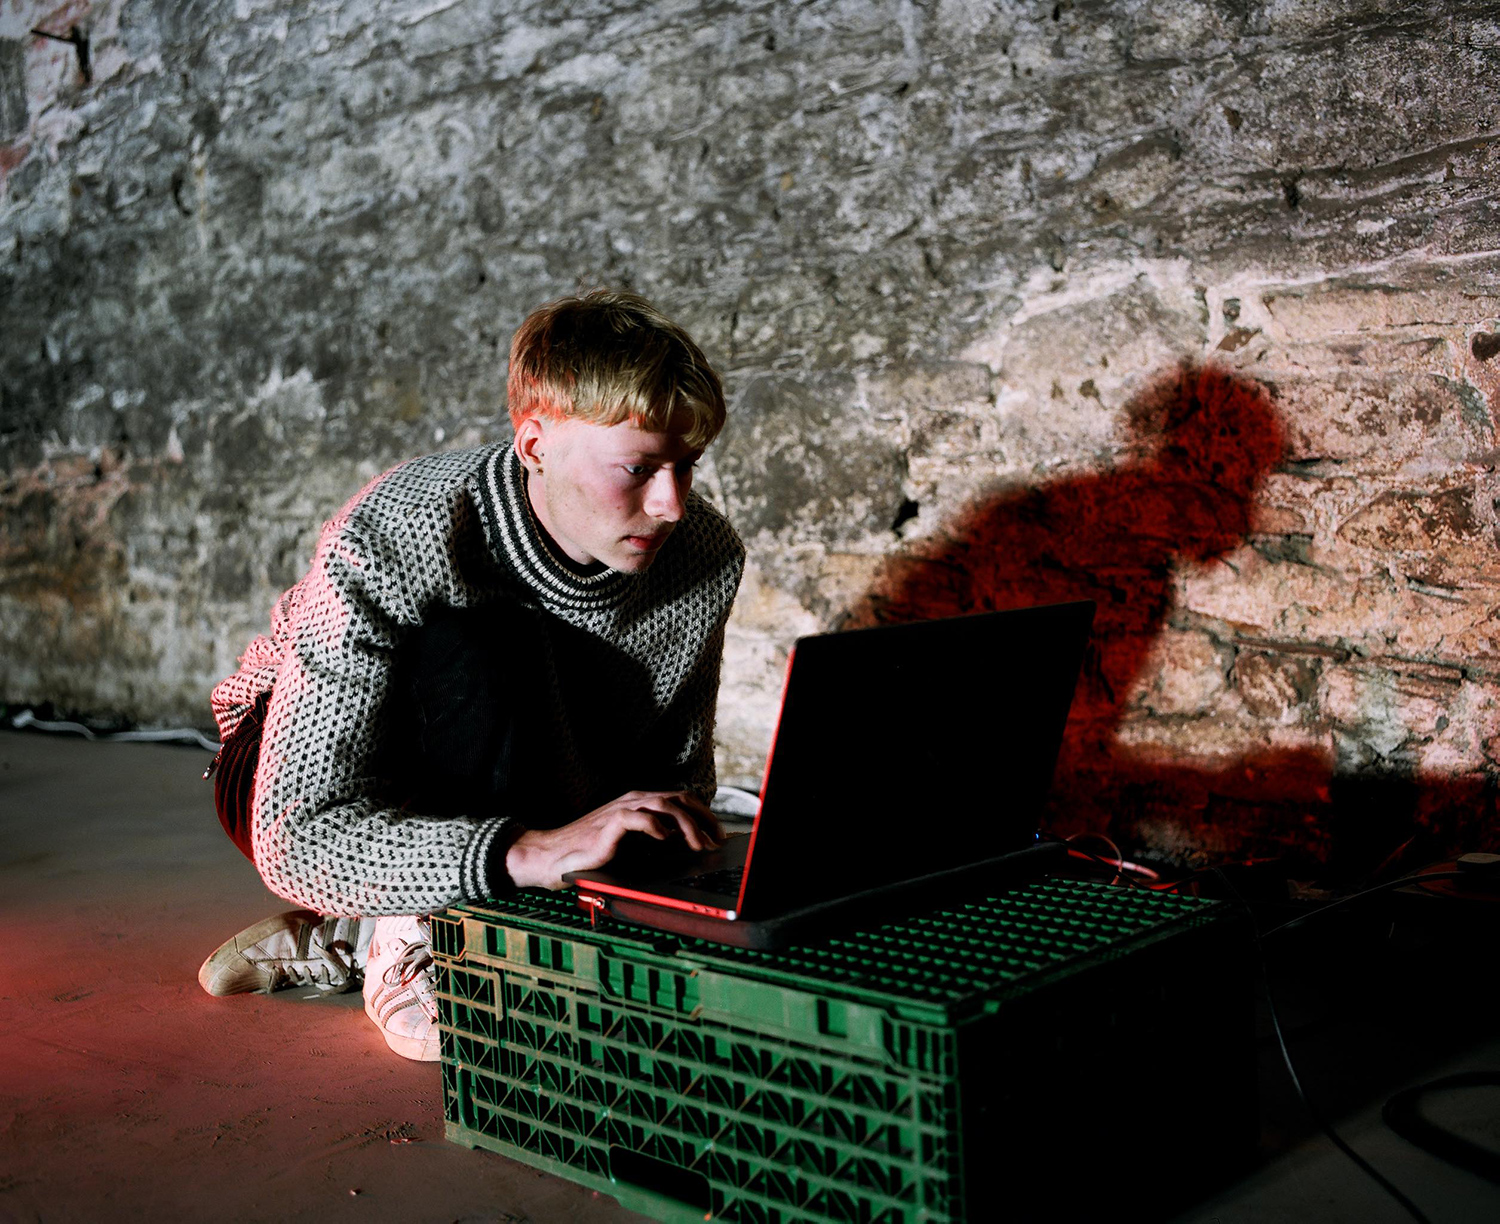 Artist with laptop